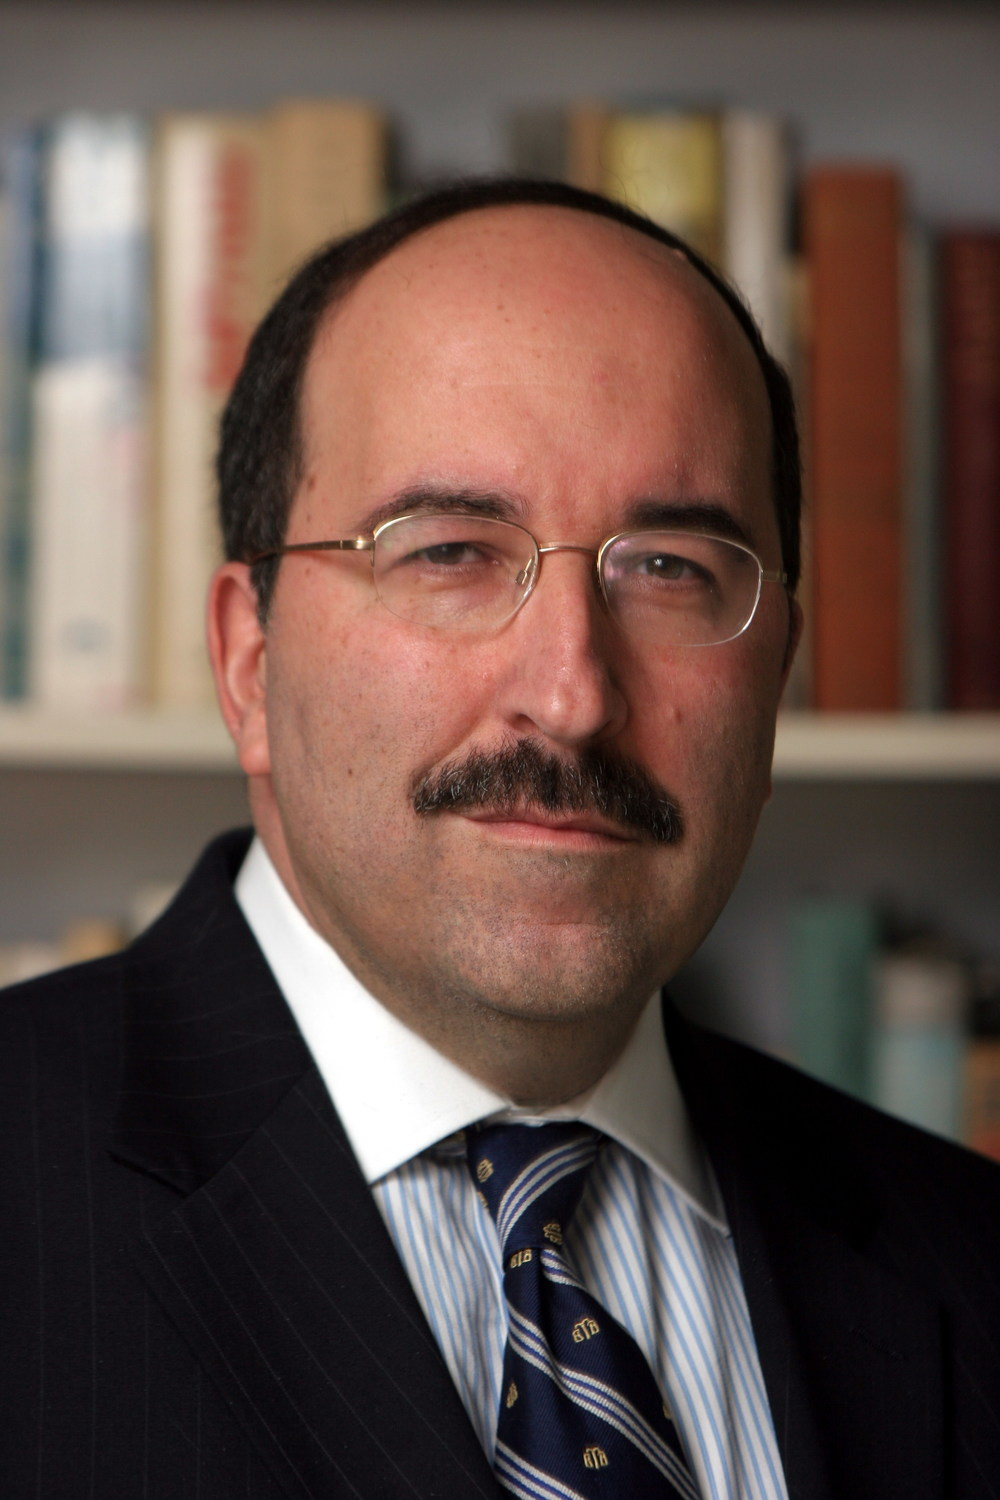 Israel Foreign Ministry Director Dore Gold. Credit: EinGedi2 via Wikimedia Commons.